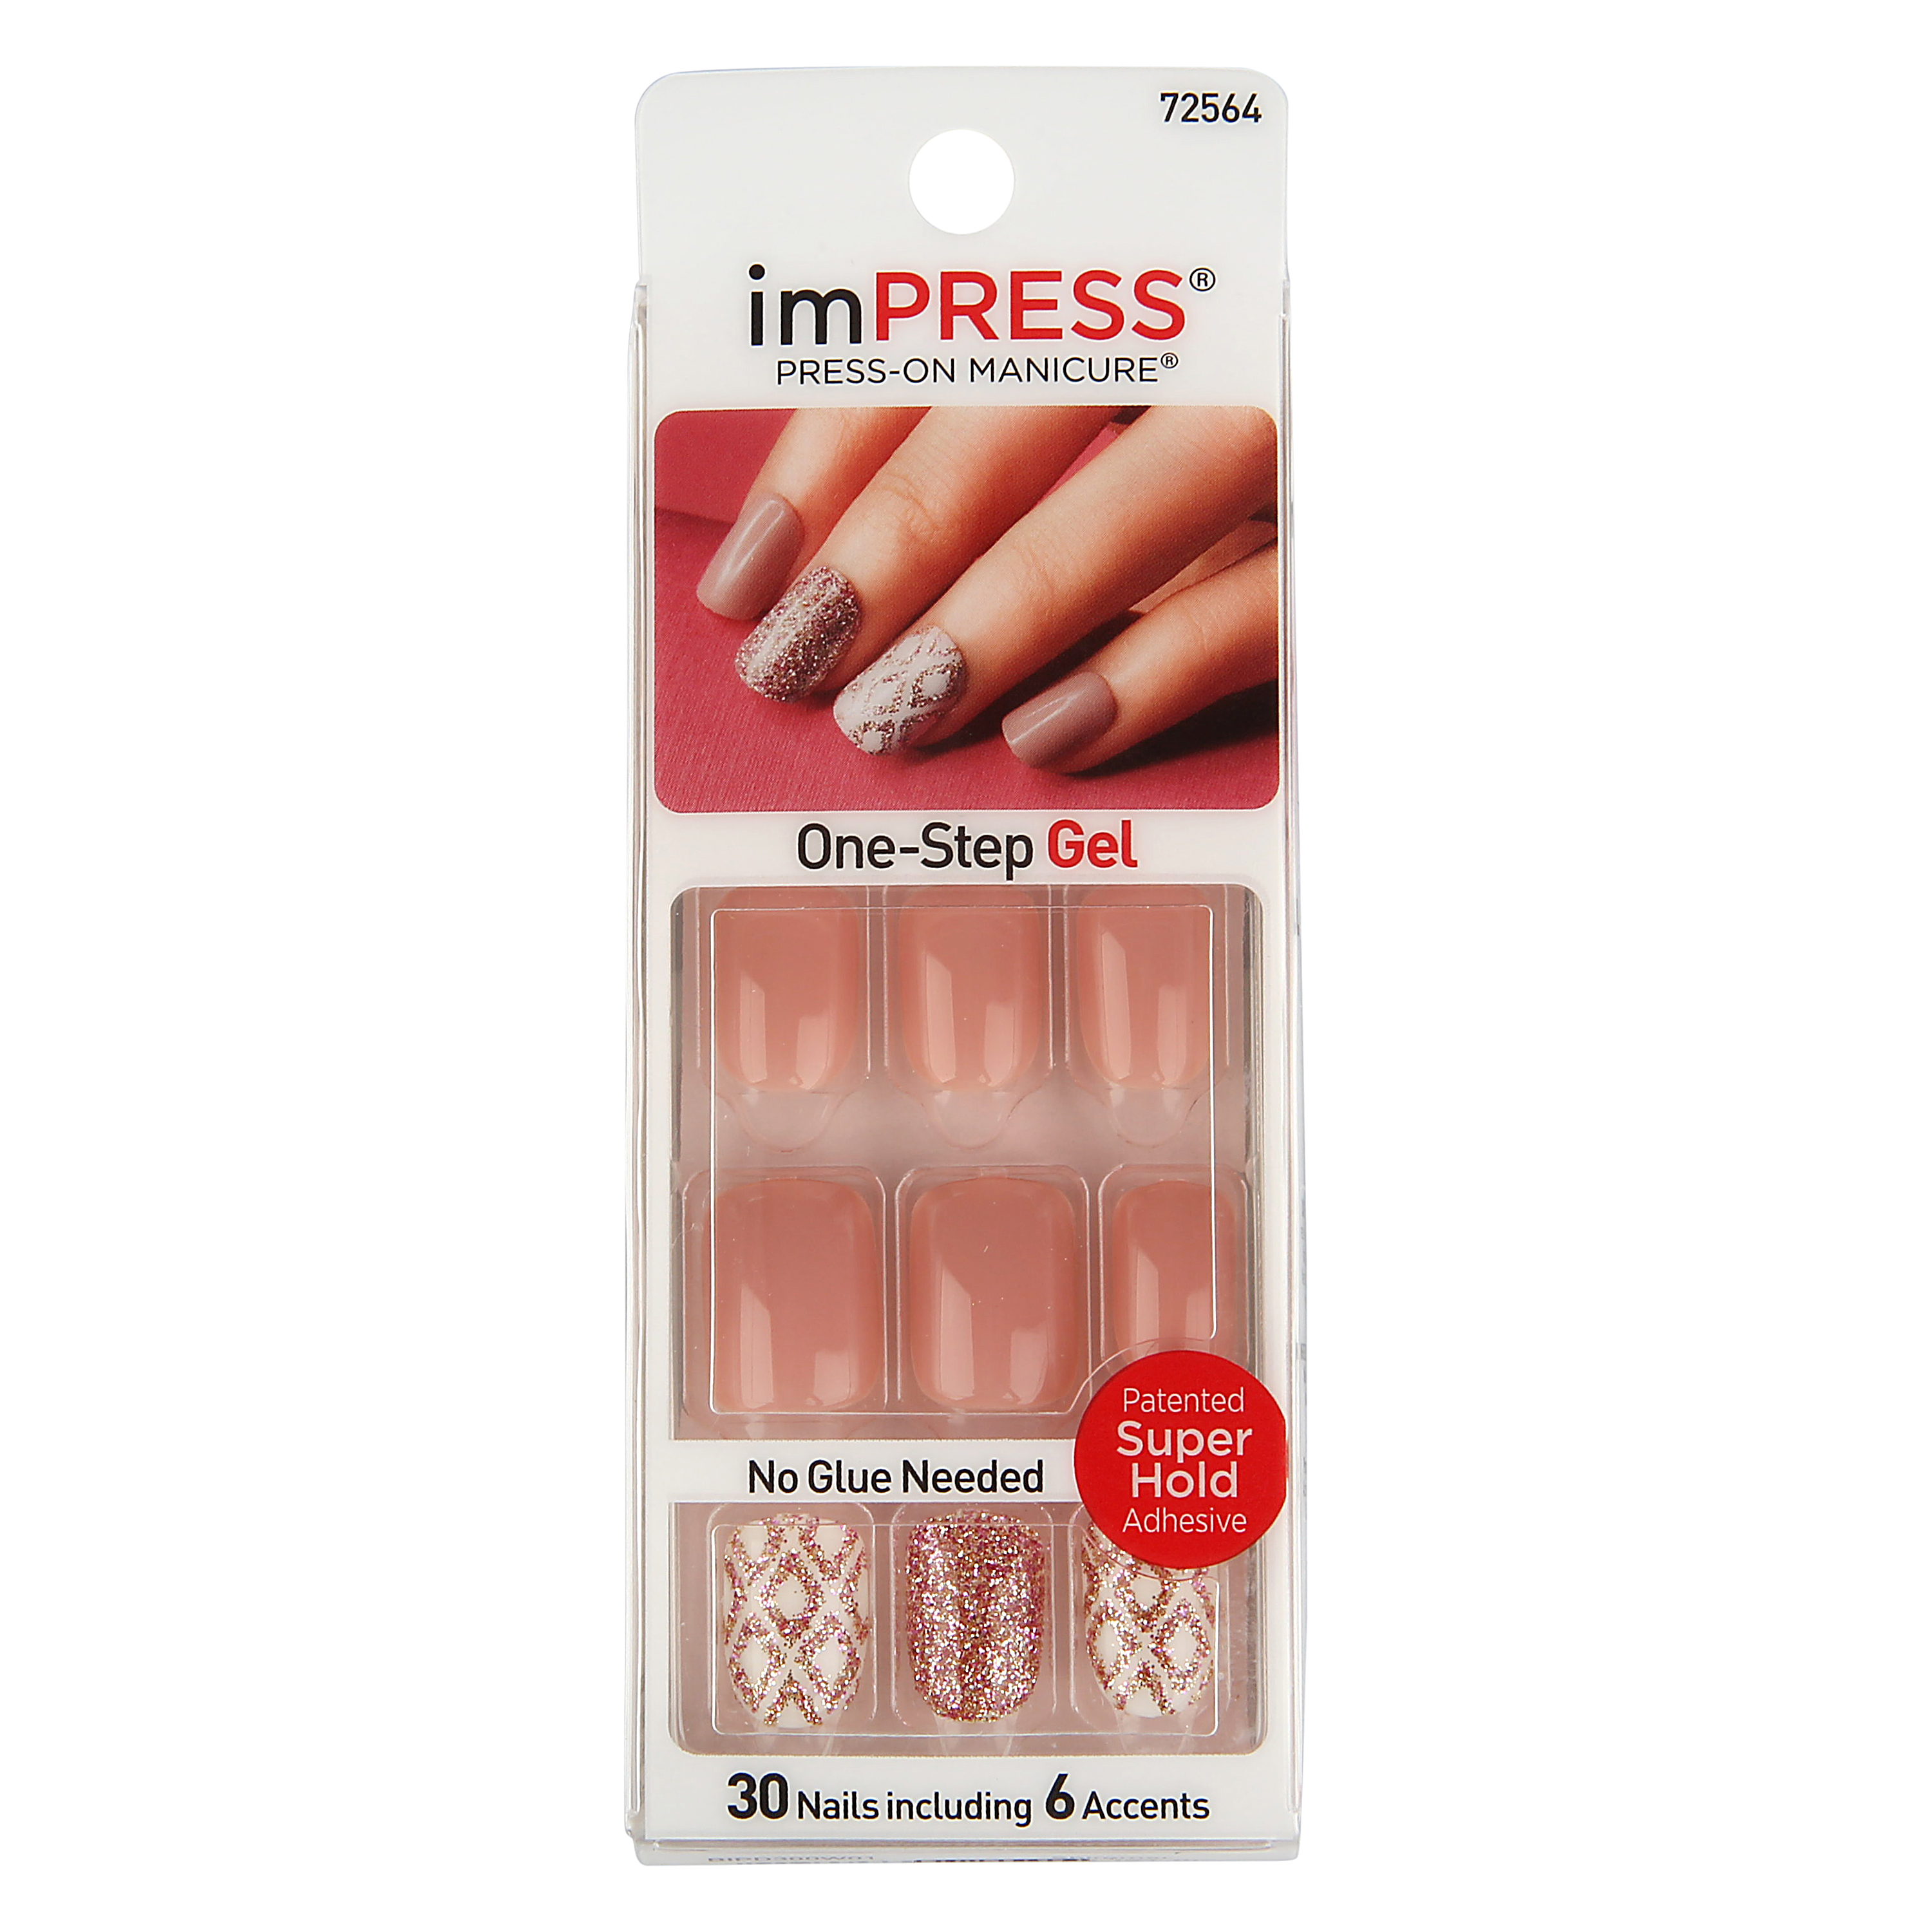 ImPRESS Press On Manicure, Shimmer